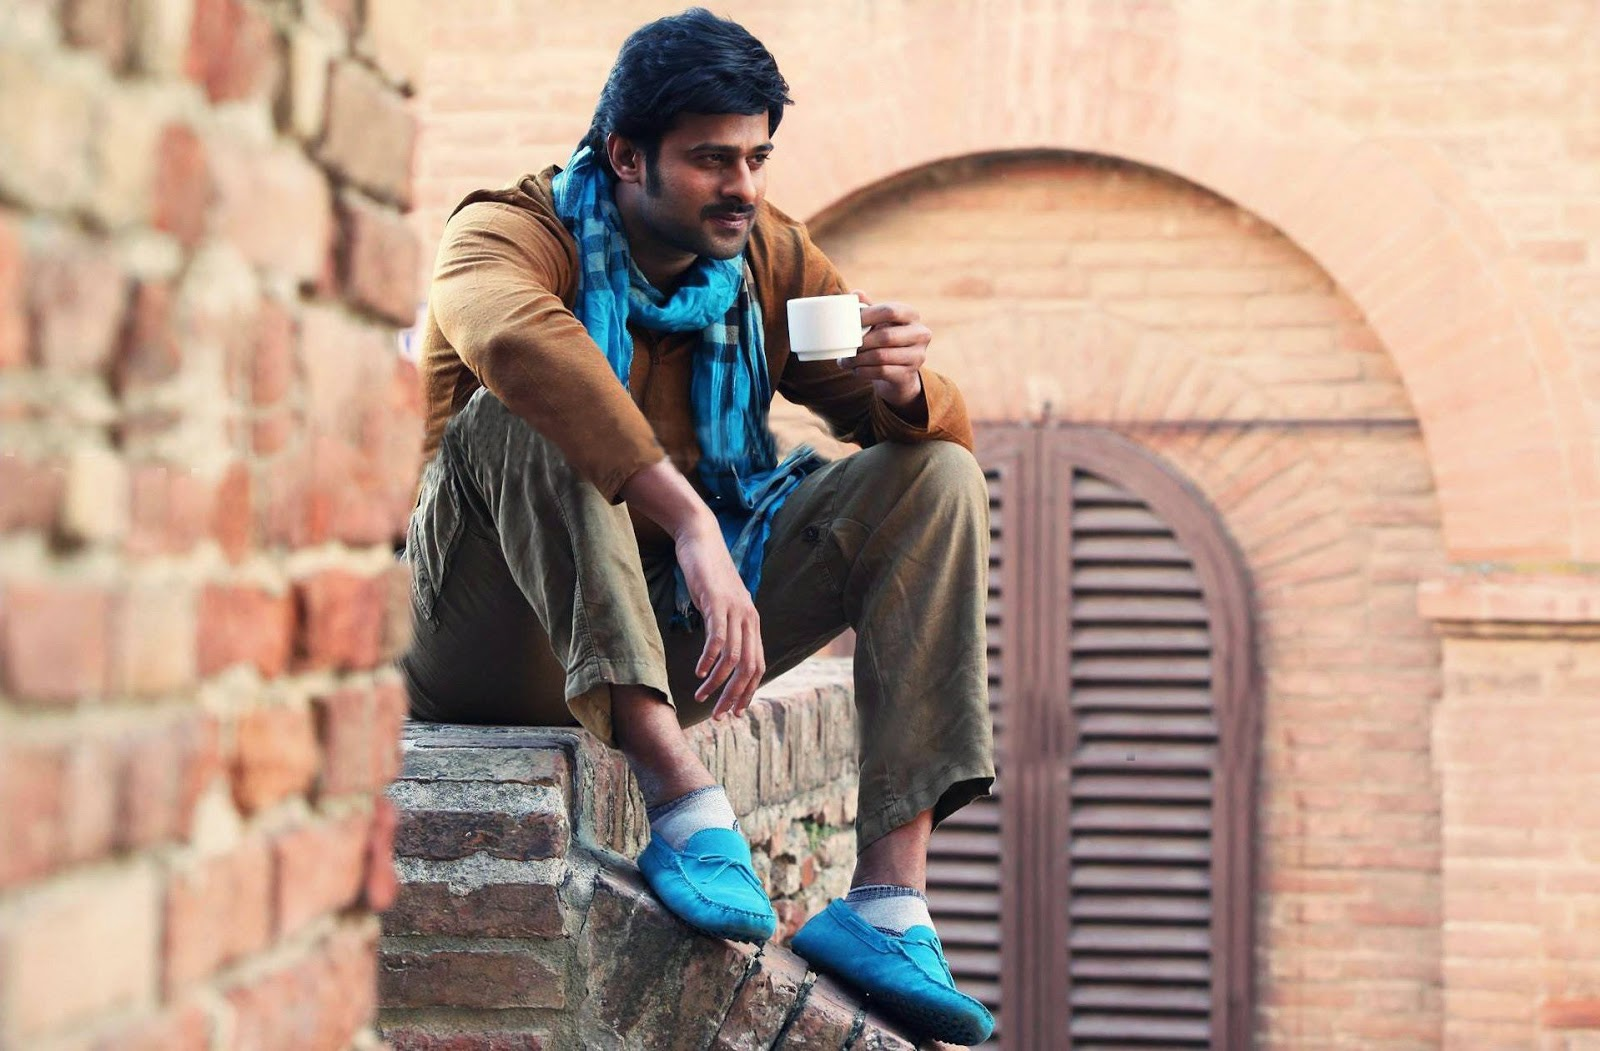 Prabhas Rebel New Stills Wallpapers Ultra Hd 2000: Prabhas Latest Hd Photos